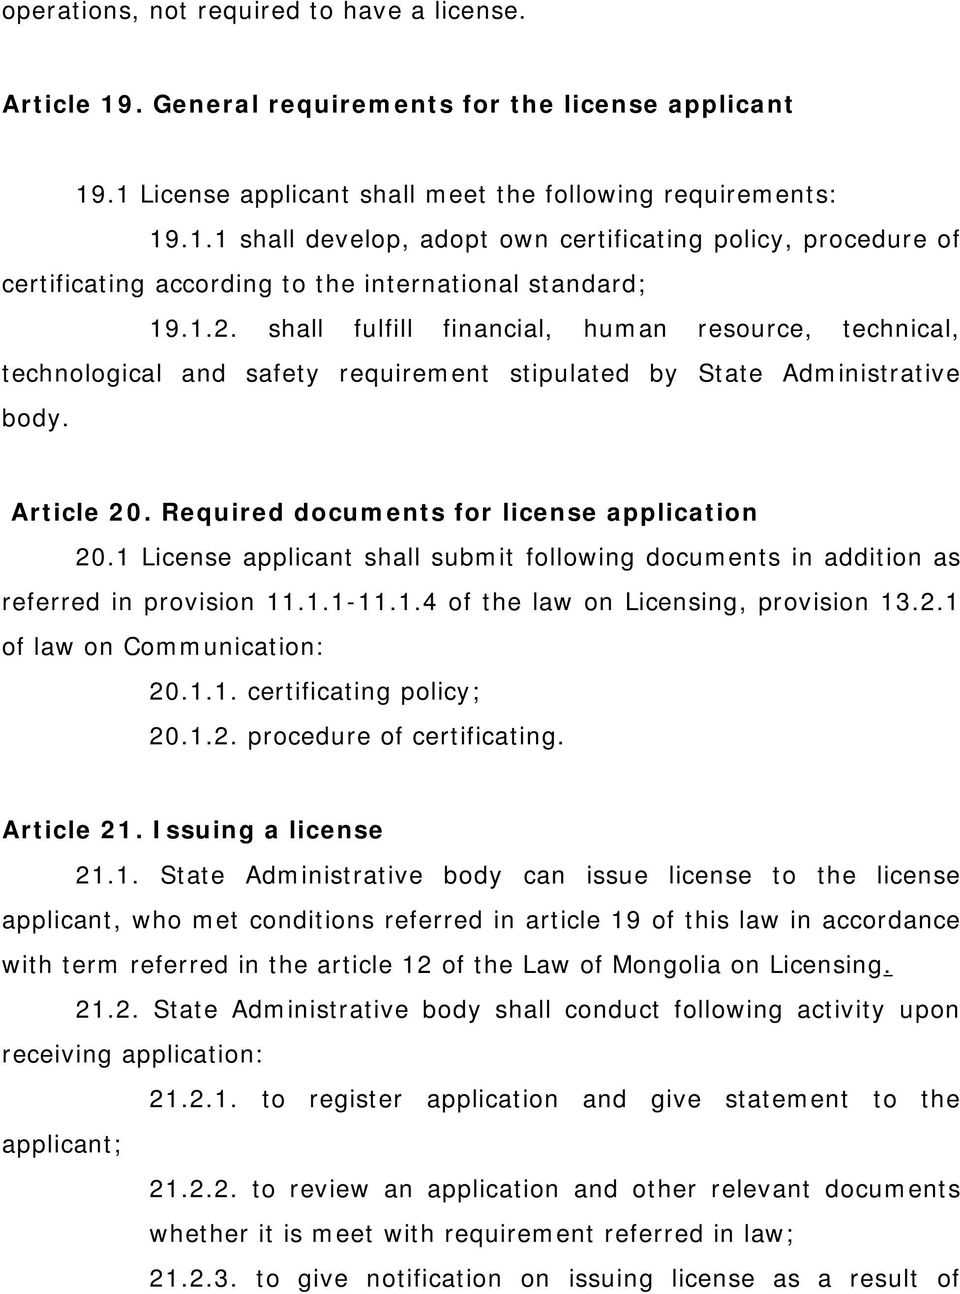 1 License applicant shall submit following documents in addition as referred in provision 11.1.1-11.1.4 of the law on Licensing, provision 13.2.1 of law on Communication: 20.1.1. certificating policy; 20.